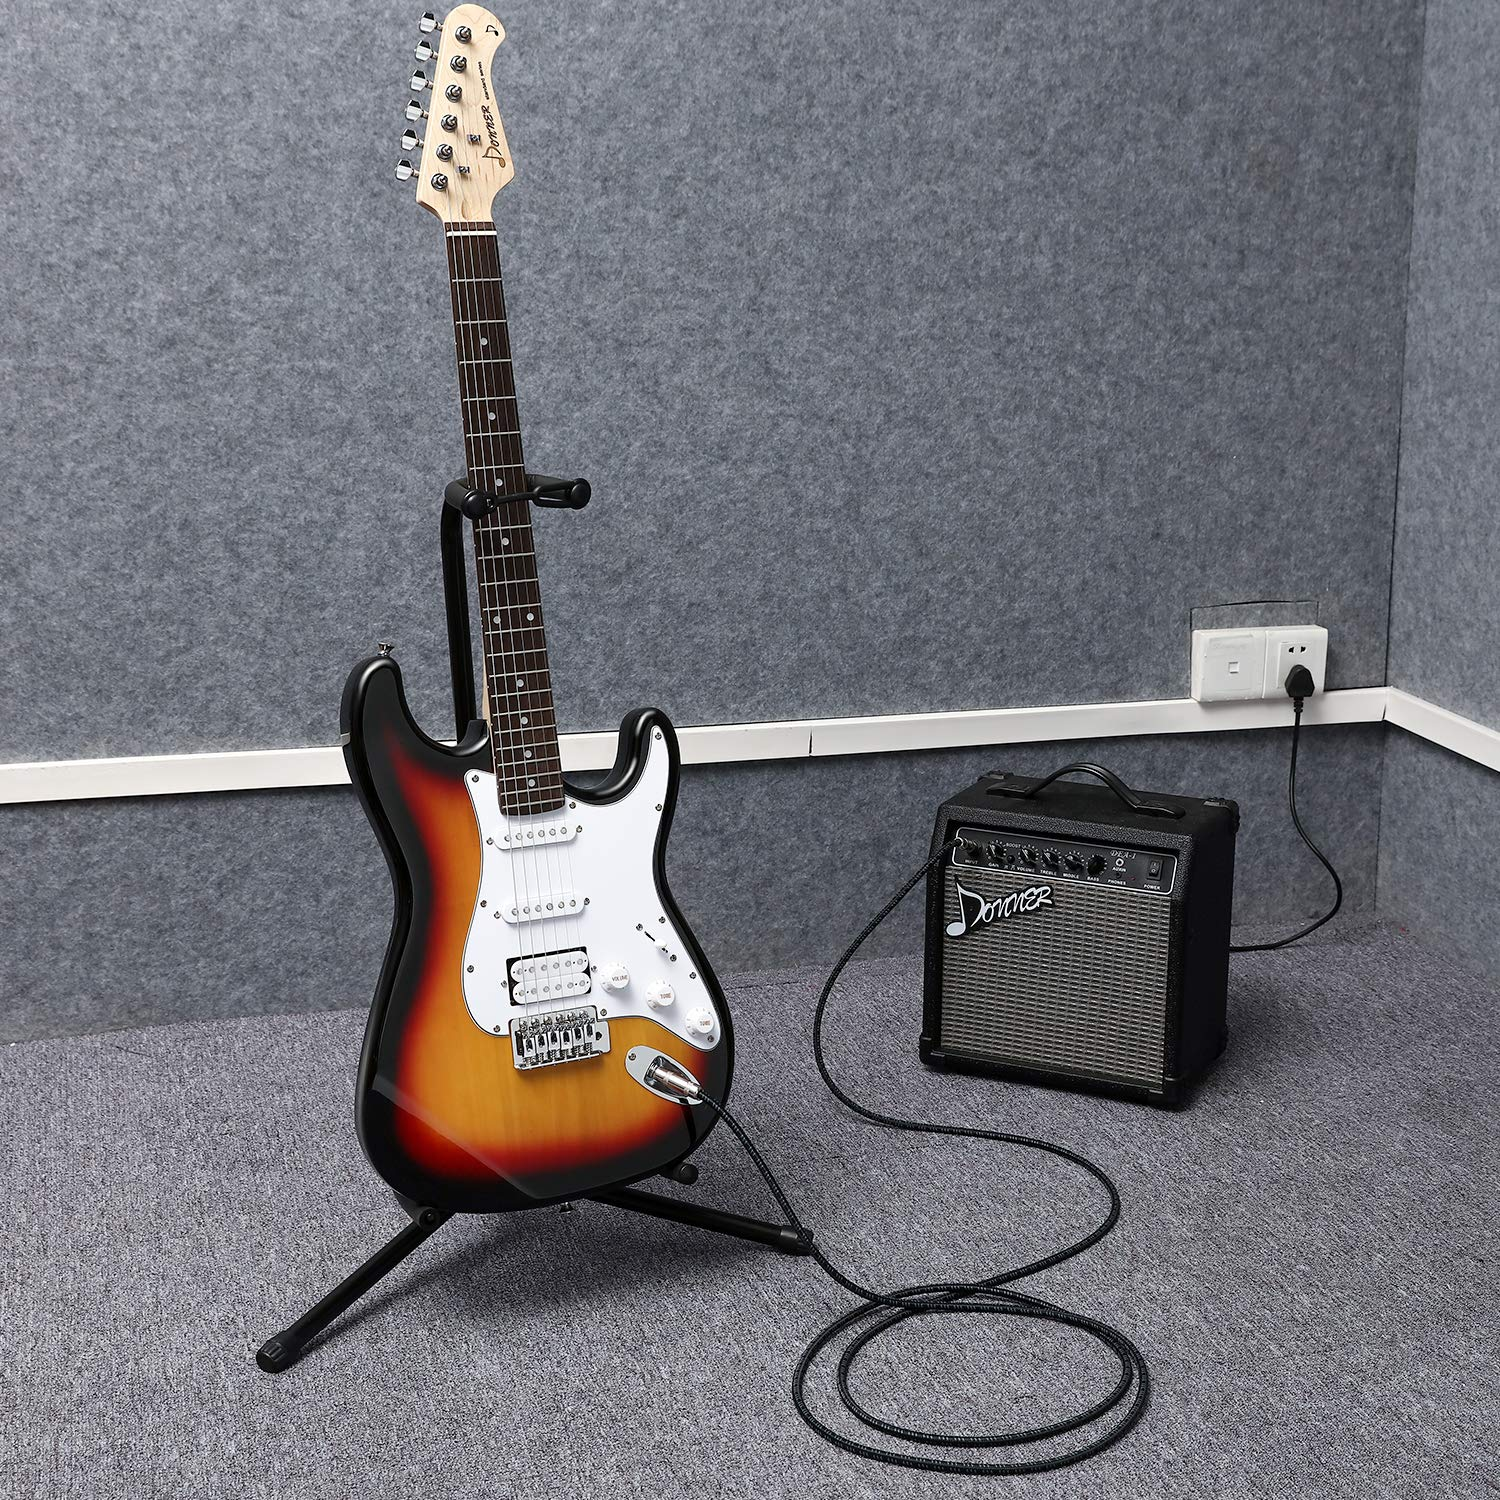 The Donner DST-1S Sunburst Electric Guitar and Amp that come with it